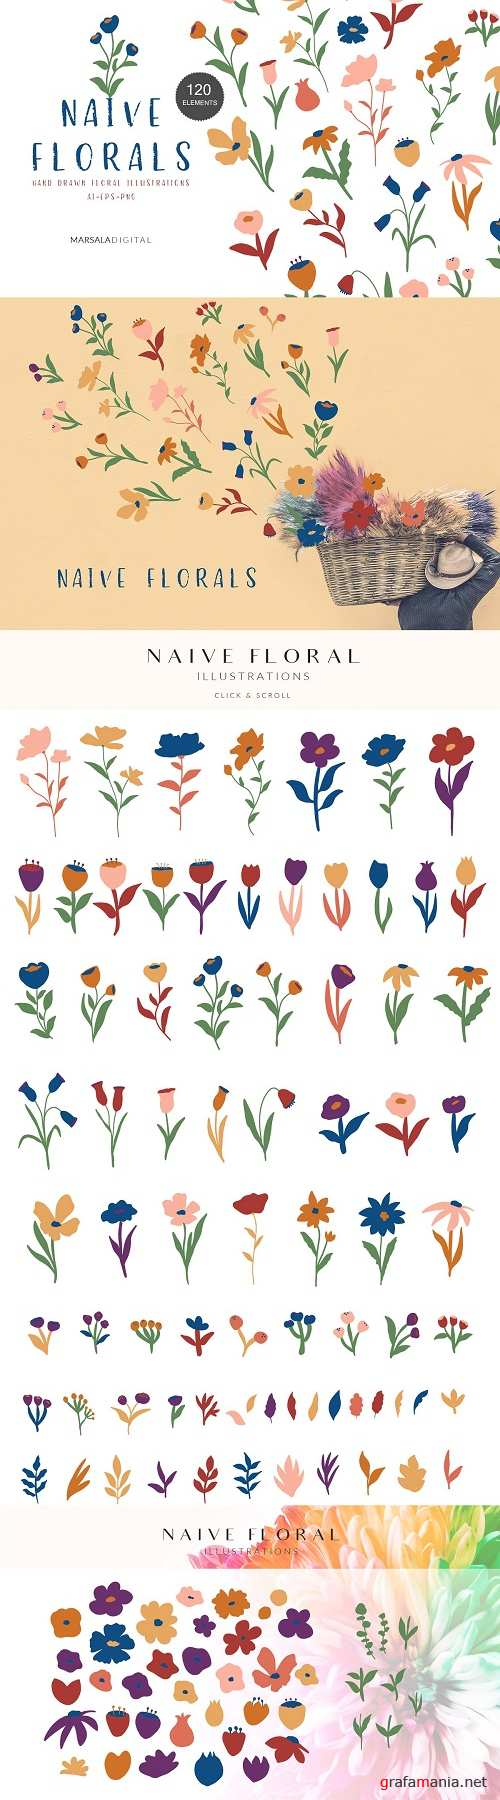 Naive Floral Illustrations - 4400767